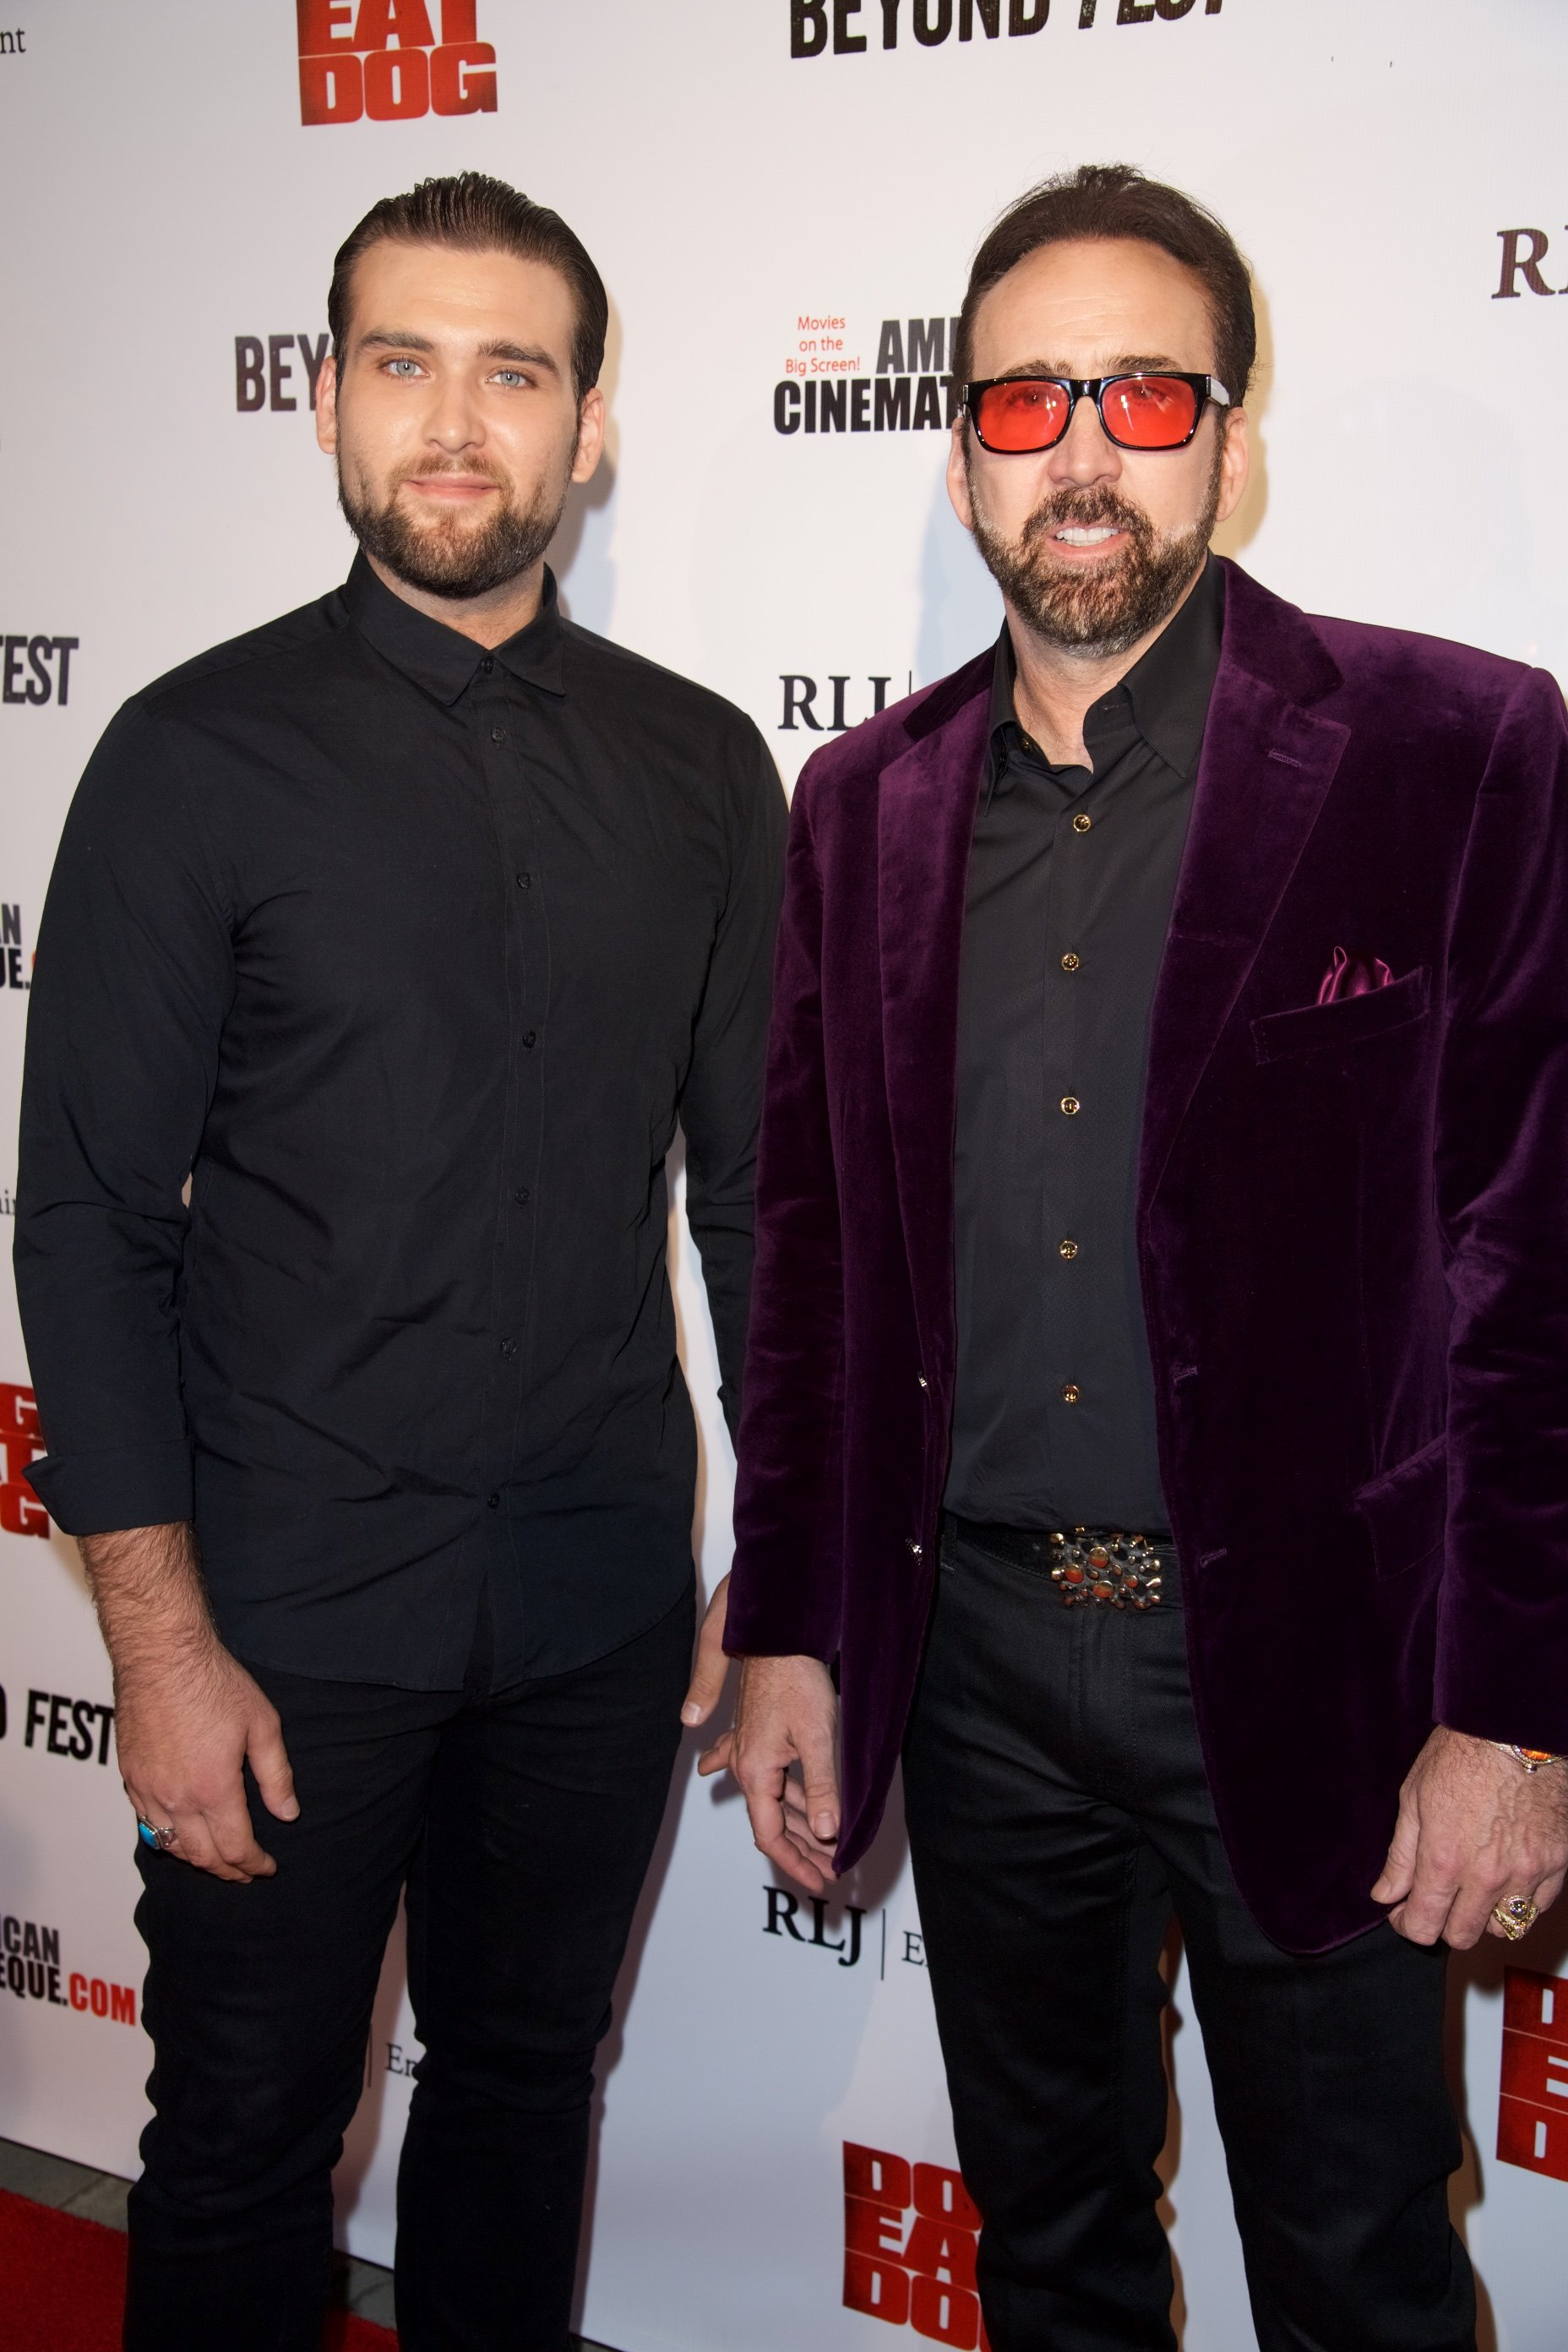 """Weston Cage and Nicholas Cage attend the Premiere of RLJ Entertainment's """"Dog Eat Dog"""" at The Egyptian Theatre on September 30, 2016, in Los Angeles, California. 